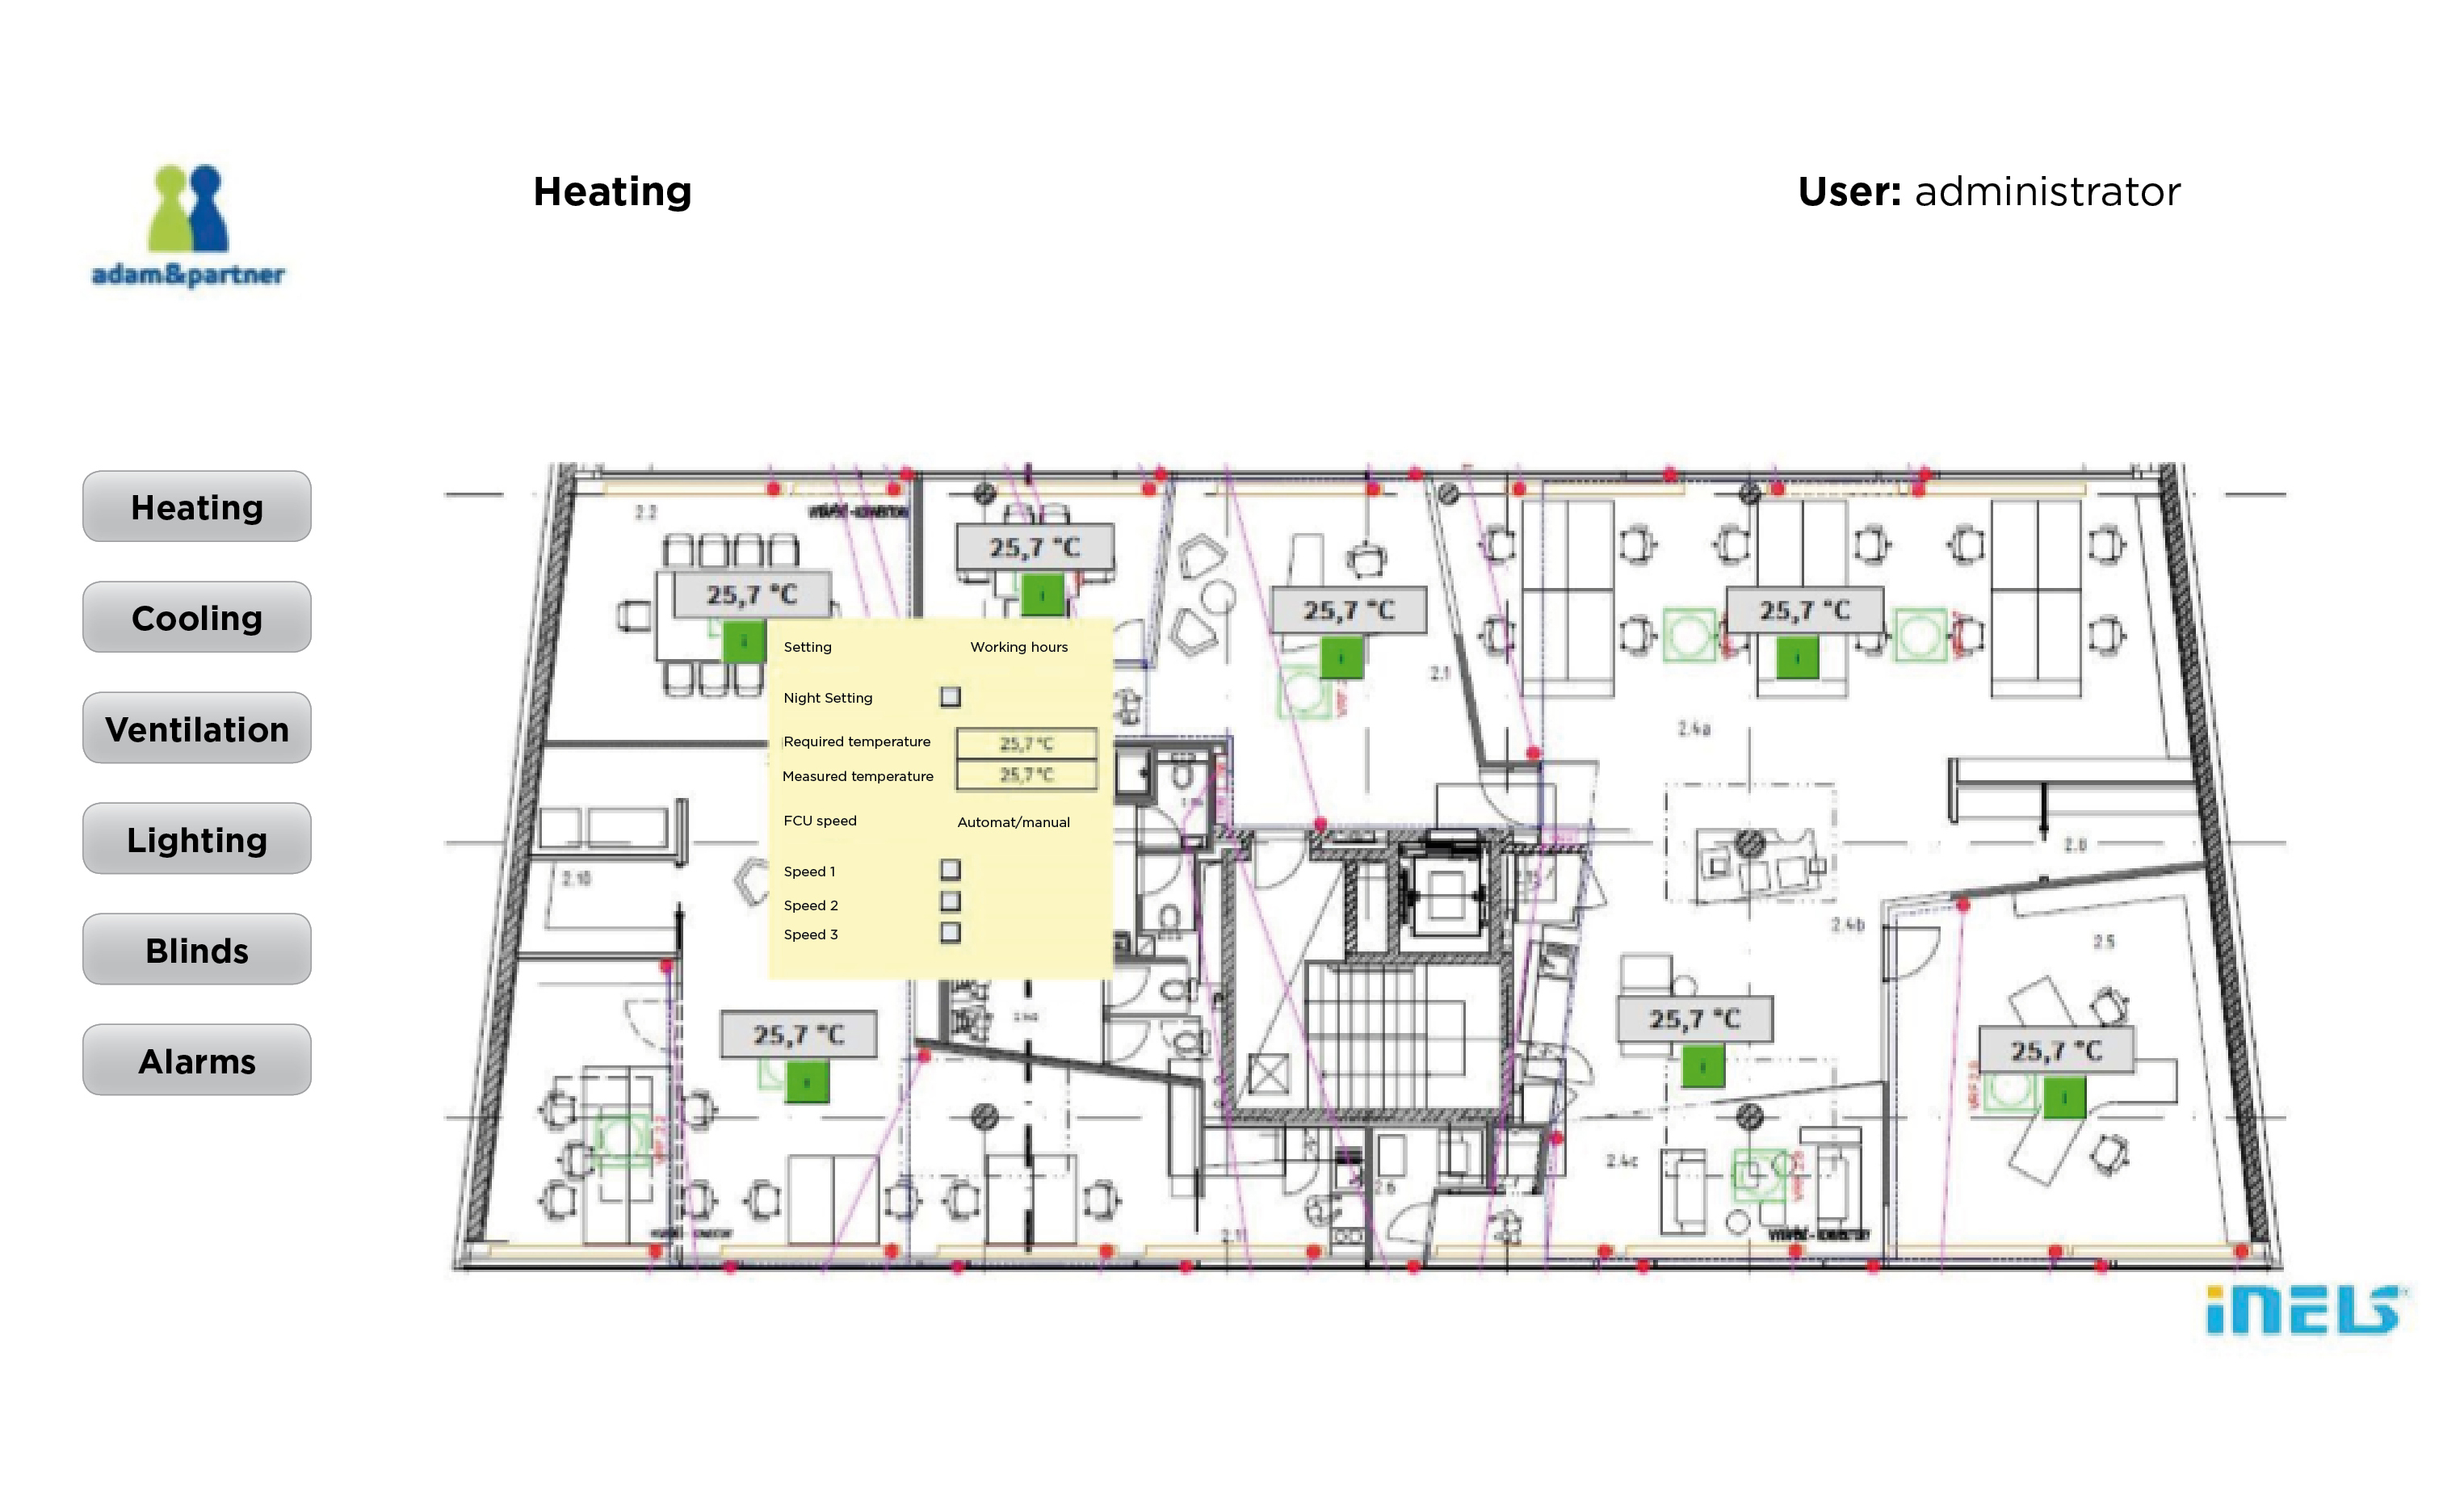 building management system wiring diagram bms     building management system     elkoep  bms     building management system     elkoep